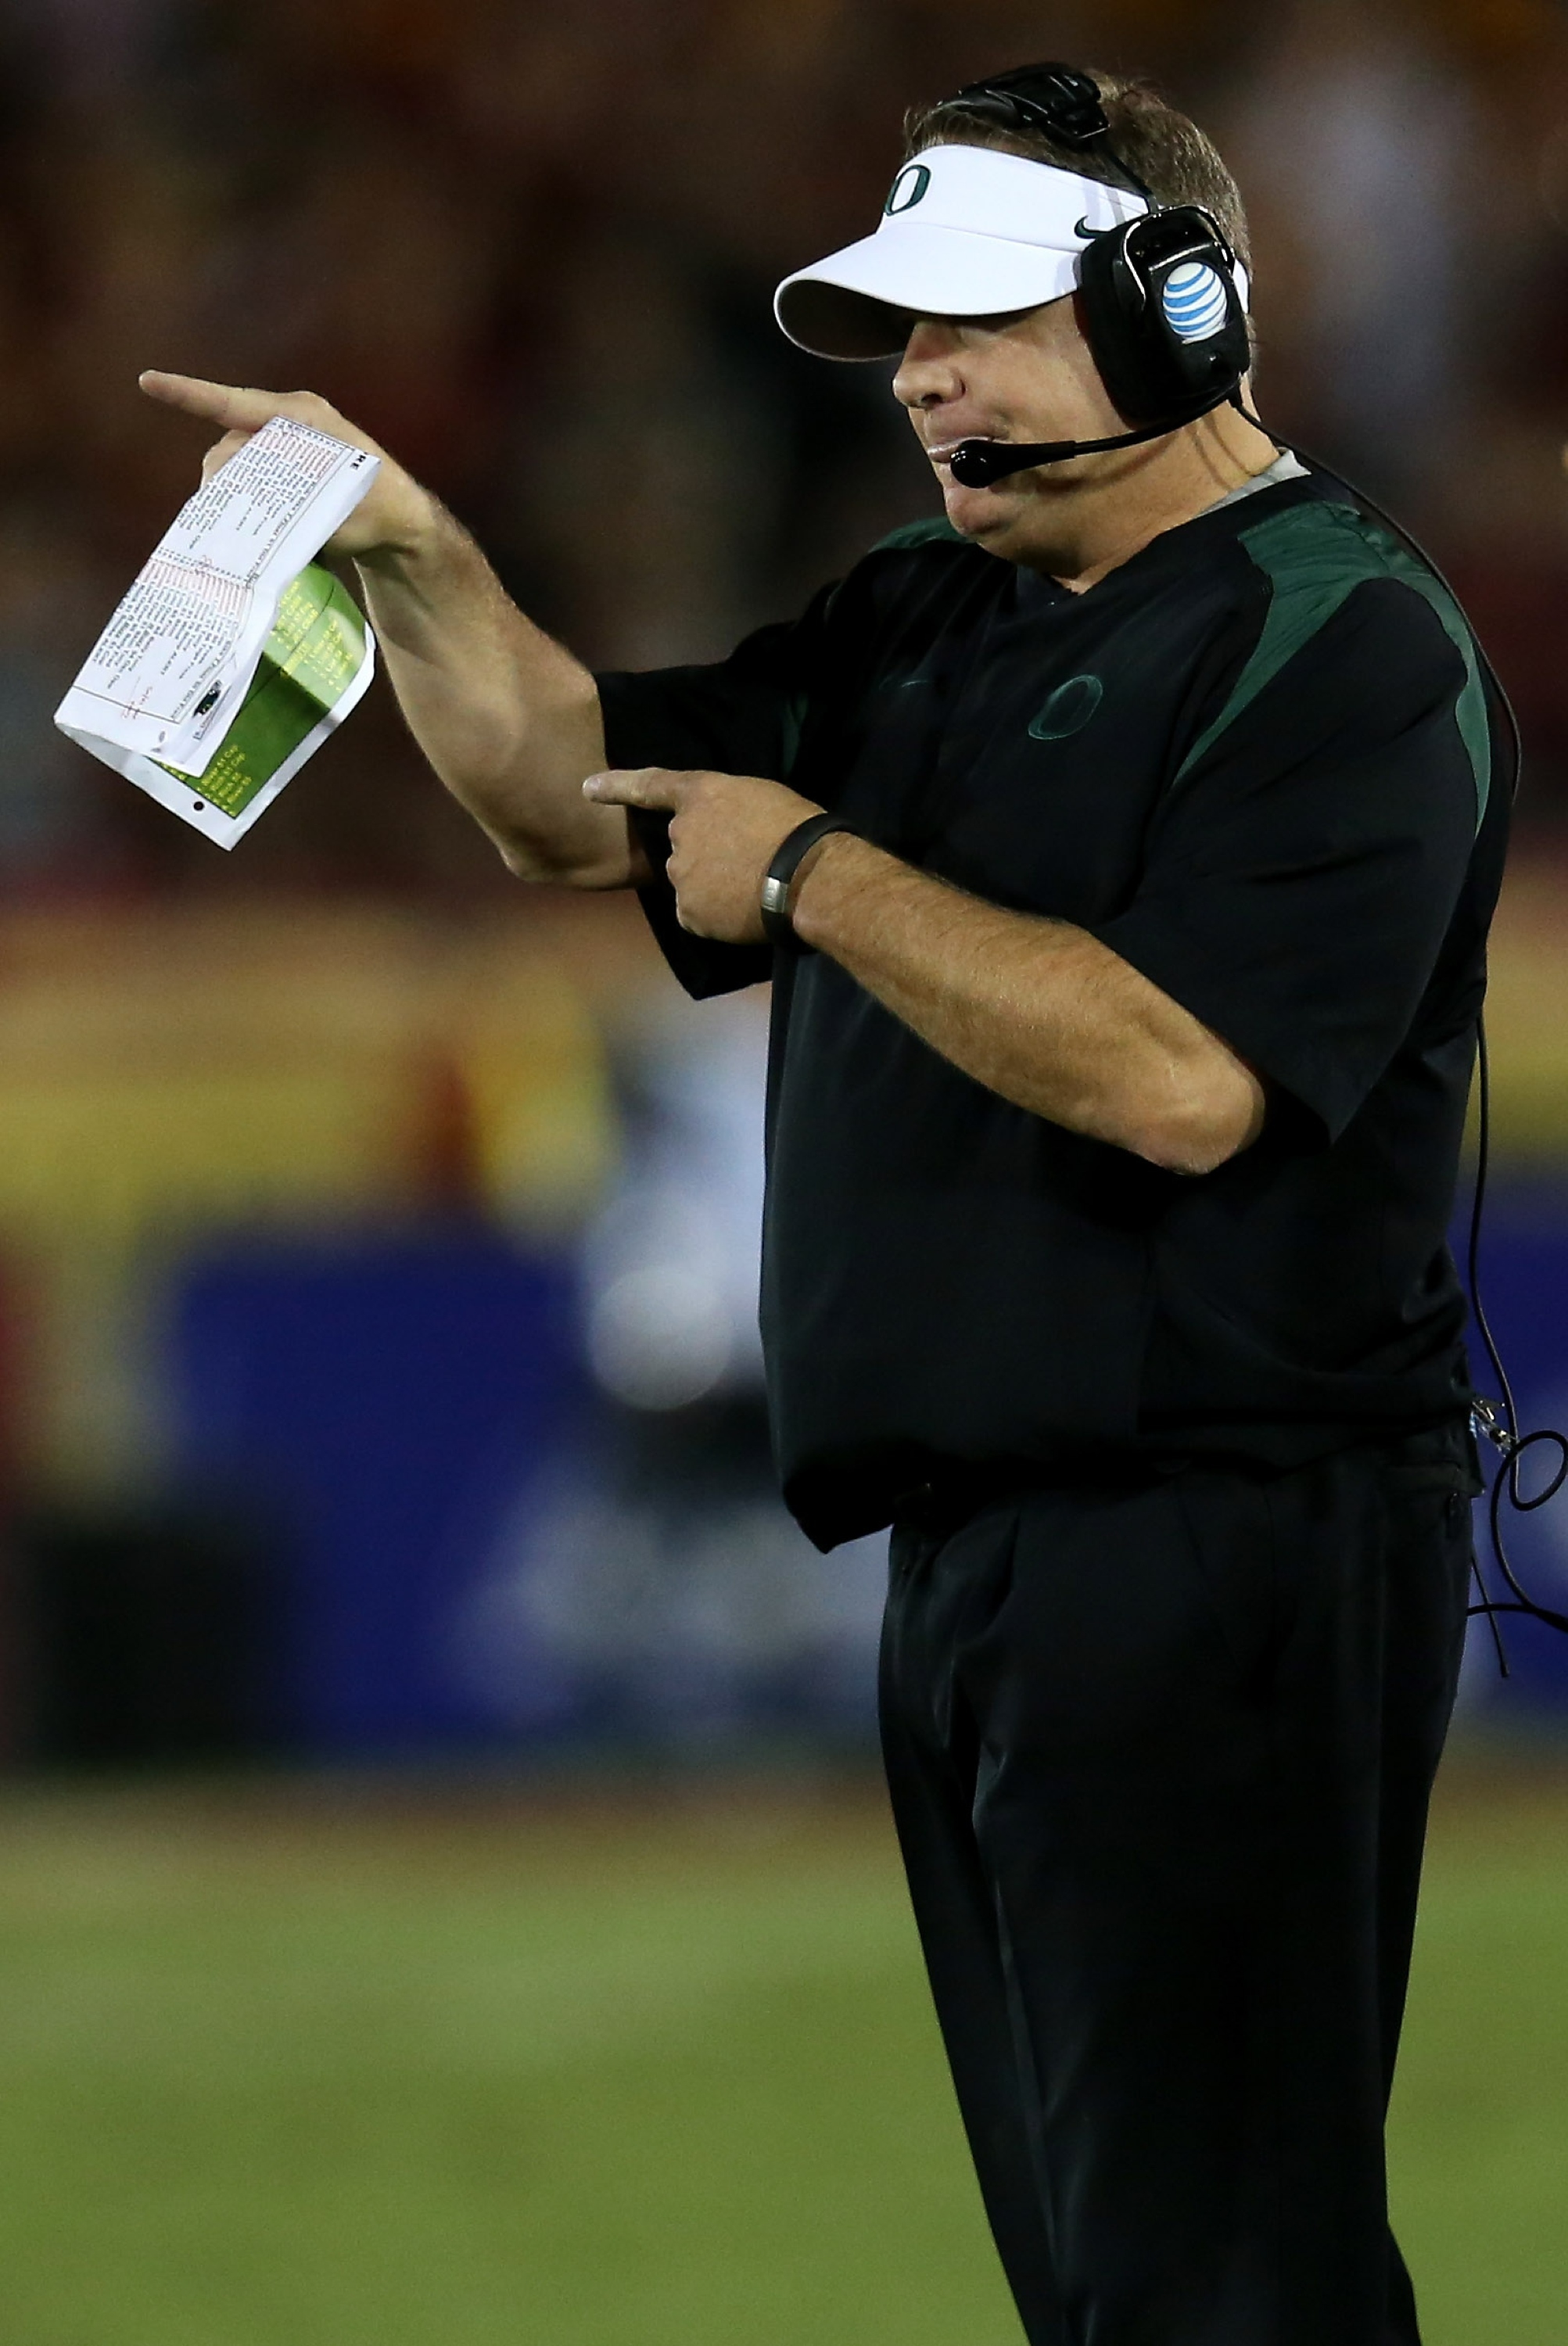 Chip Kelly is 45-7 in four seasons as head coach at Oregon. (Getty)